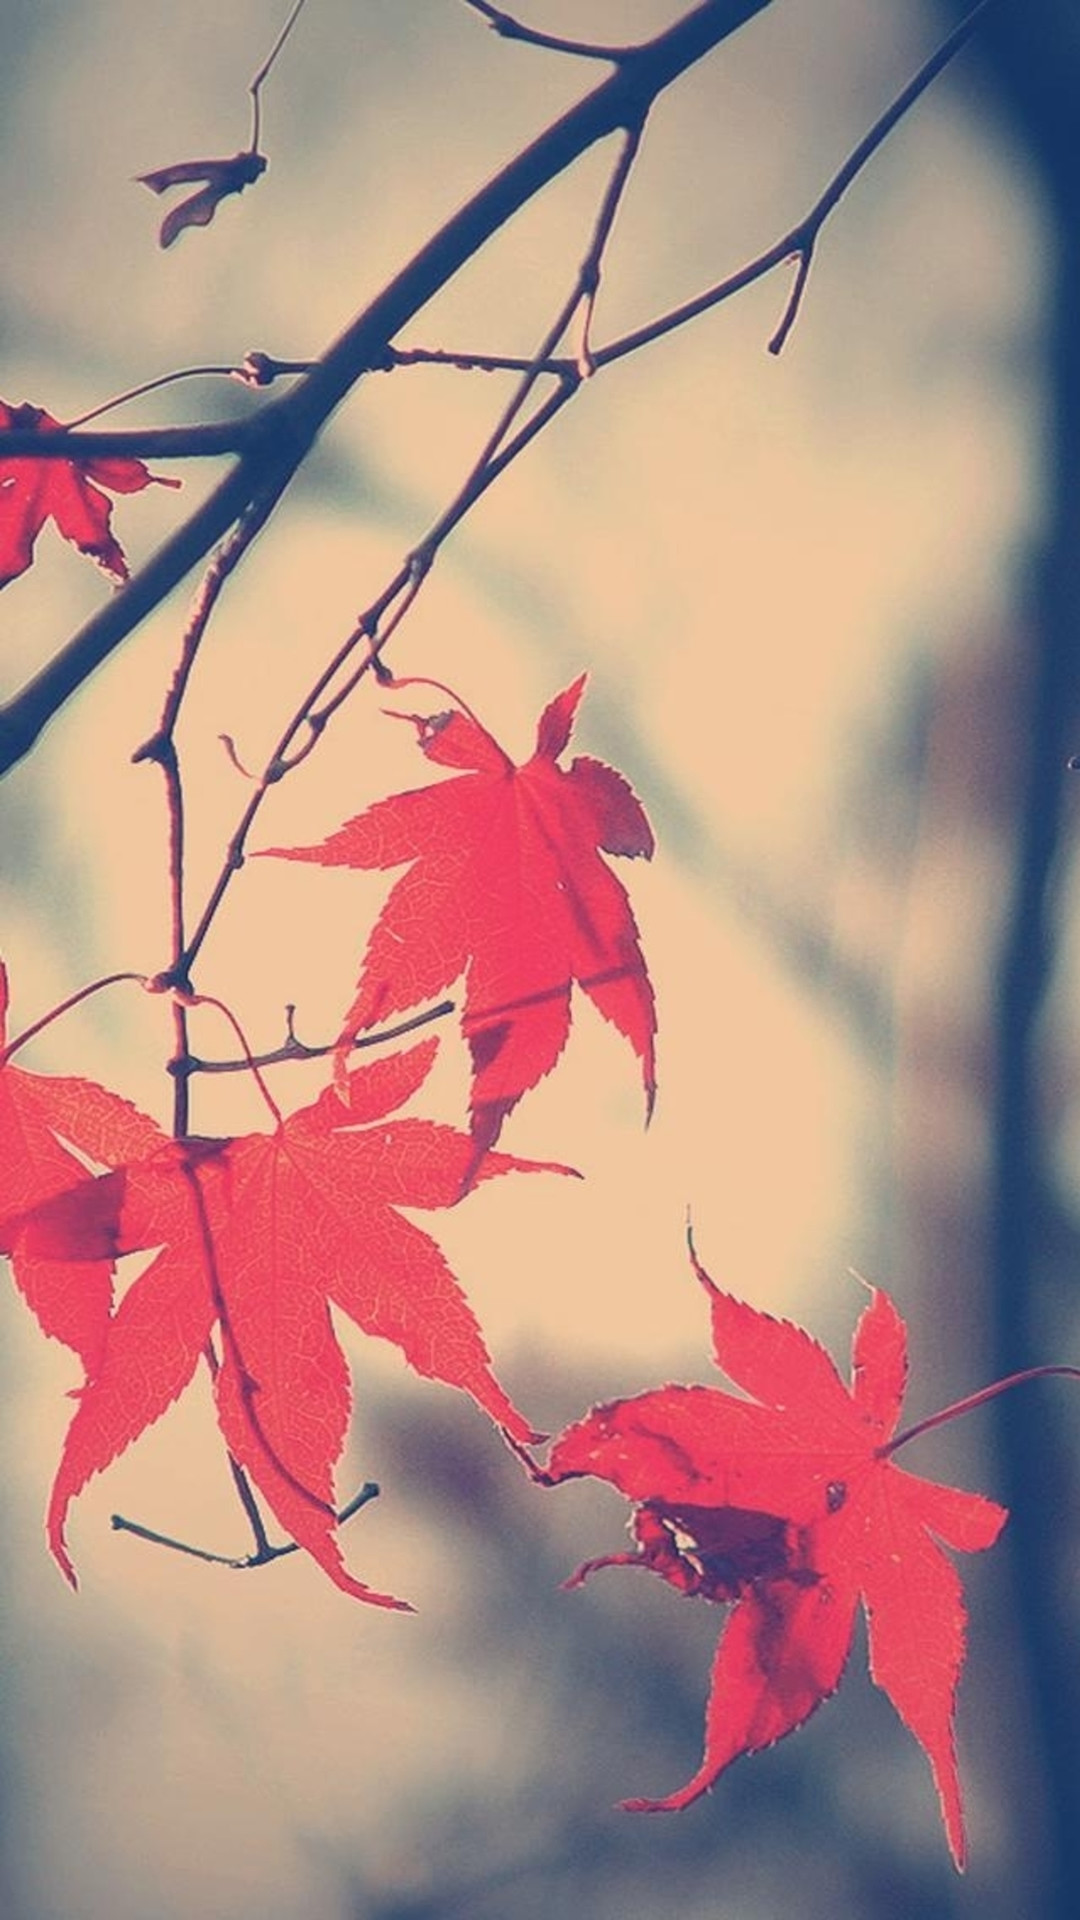 fall wallpapers iphone, autumn iphone background